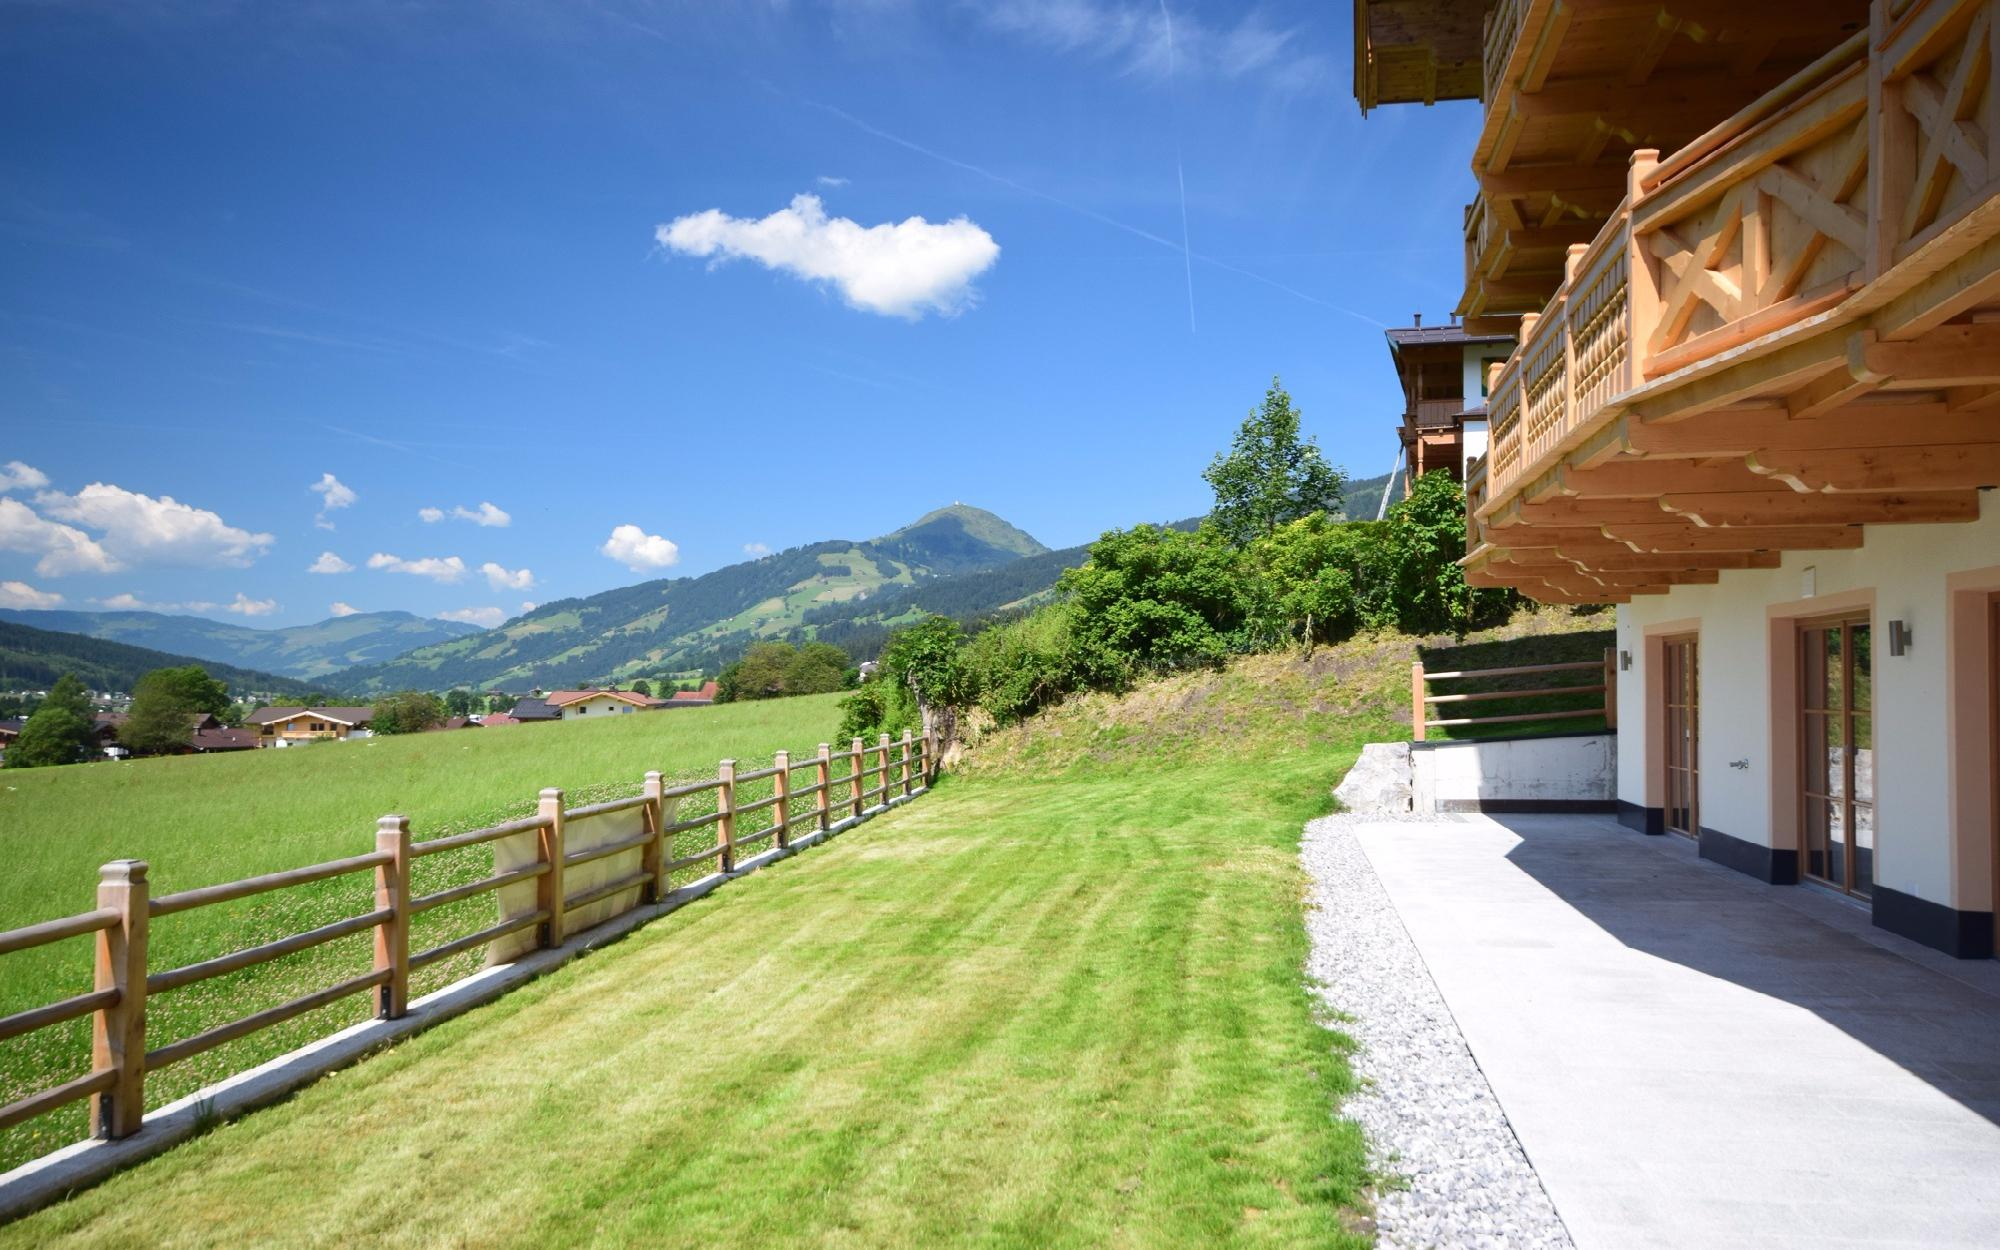 Penthouse & apartment in an unobstructed sunny view in Kirchberg for Sale - Tirol - Austria